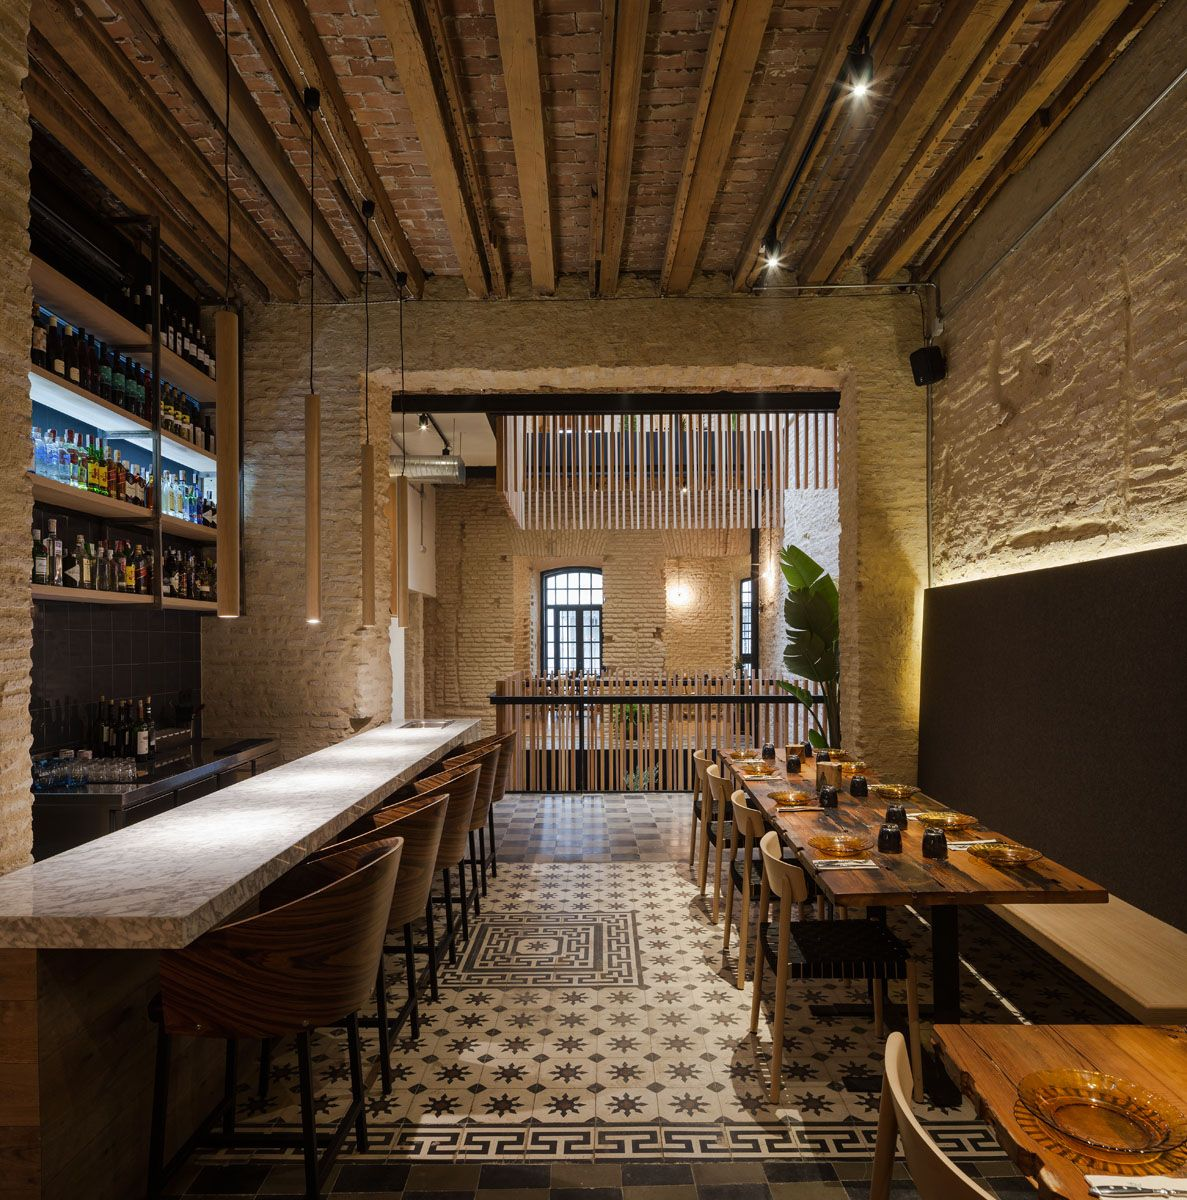 Restaurant Beleuchtung Donaire Arquitectos Rehabs An Old House Into A New Restaurant — Knstrct | Restaurant Interieur, Vinothek, Restaurant